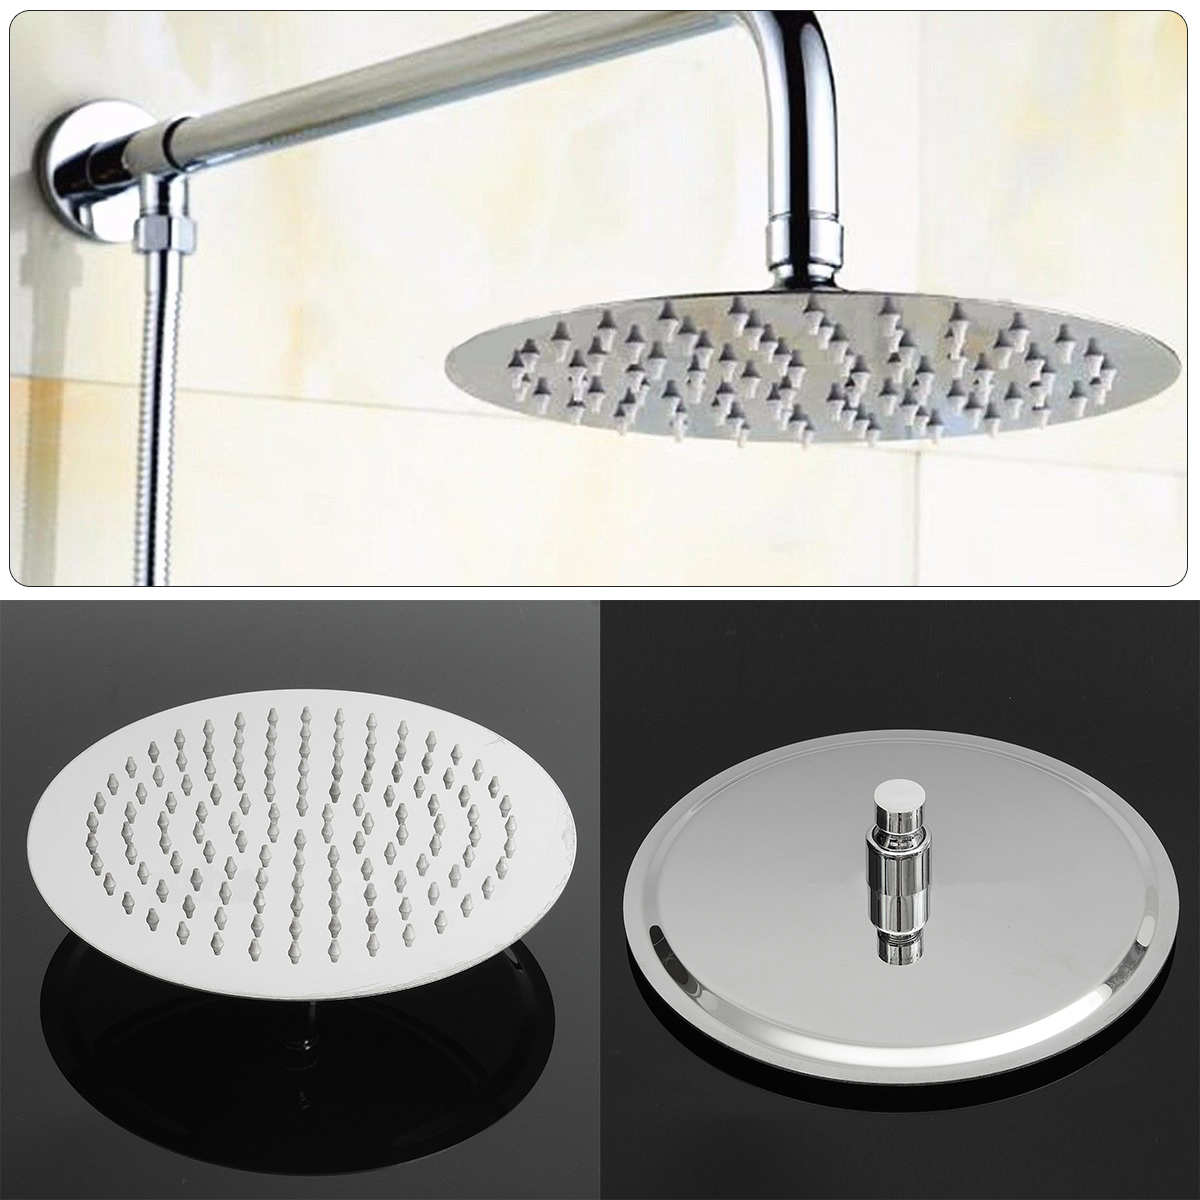 High Quality 10 Inch Shower Sprayer Ultra-thin Rainfall Shower Head Bathroom Tools Accessory Stainless Steel Round Showerhead